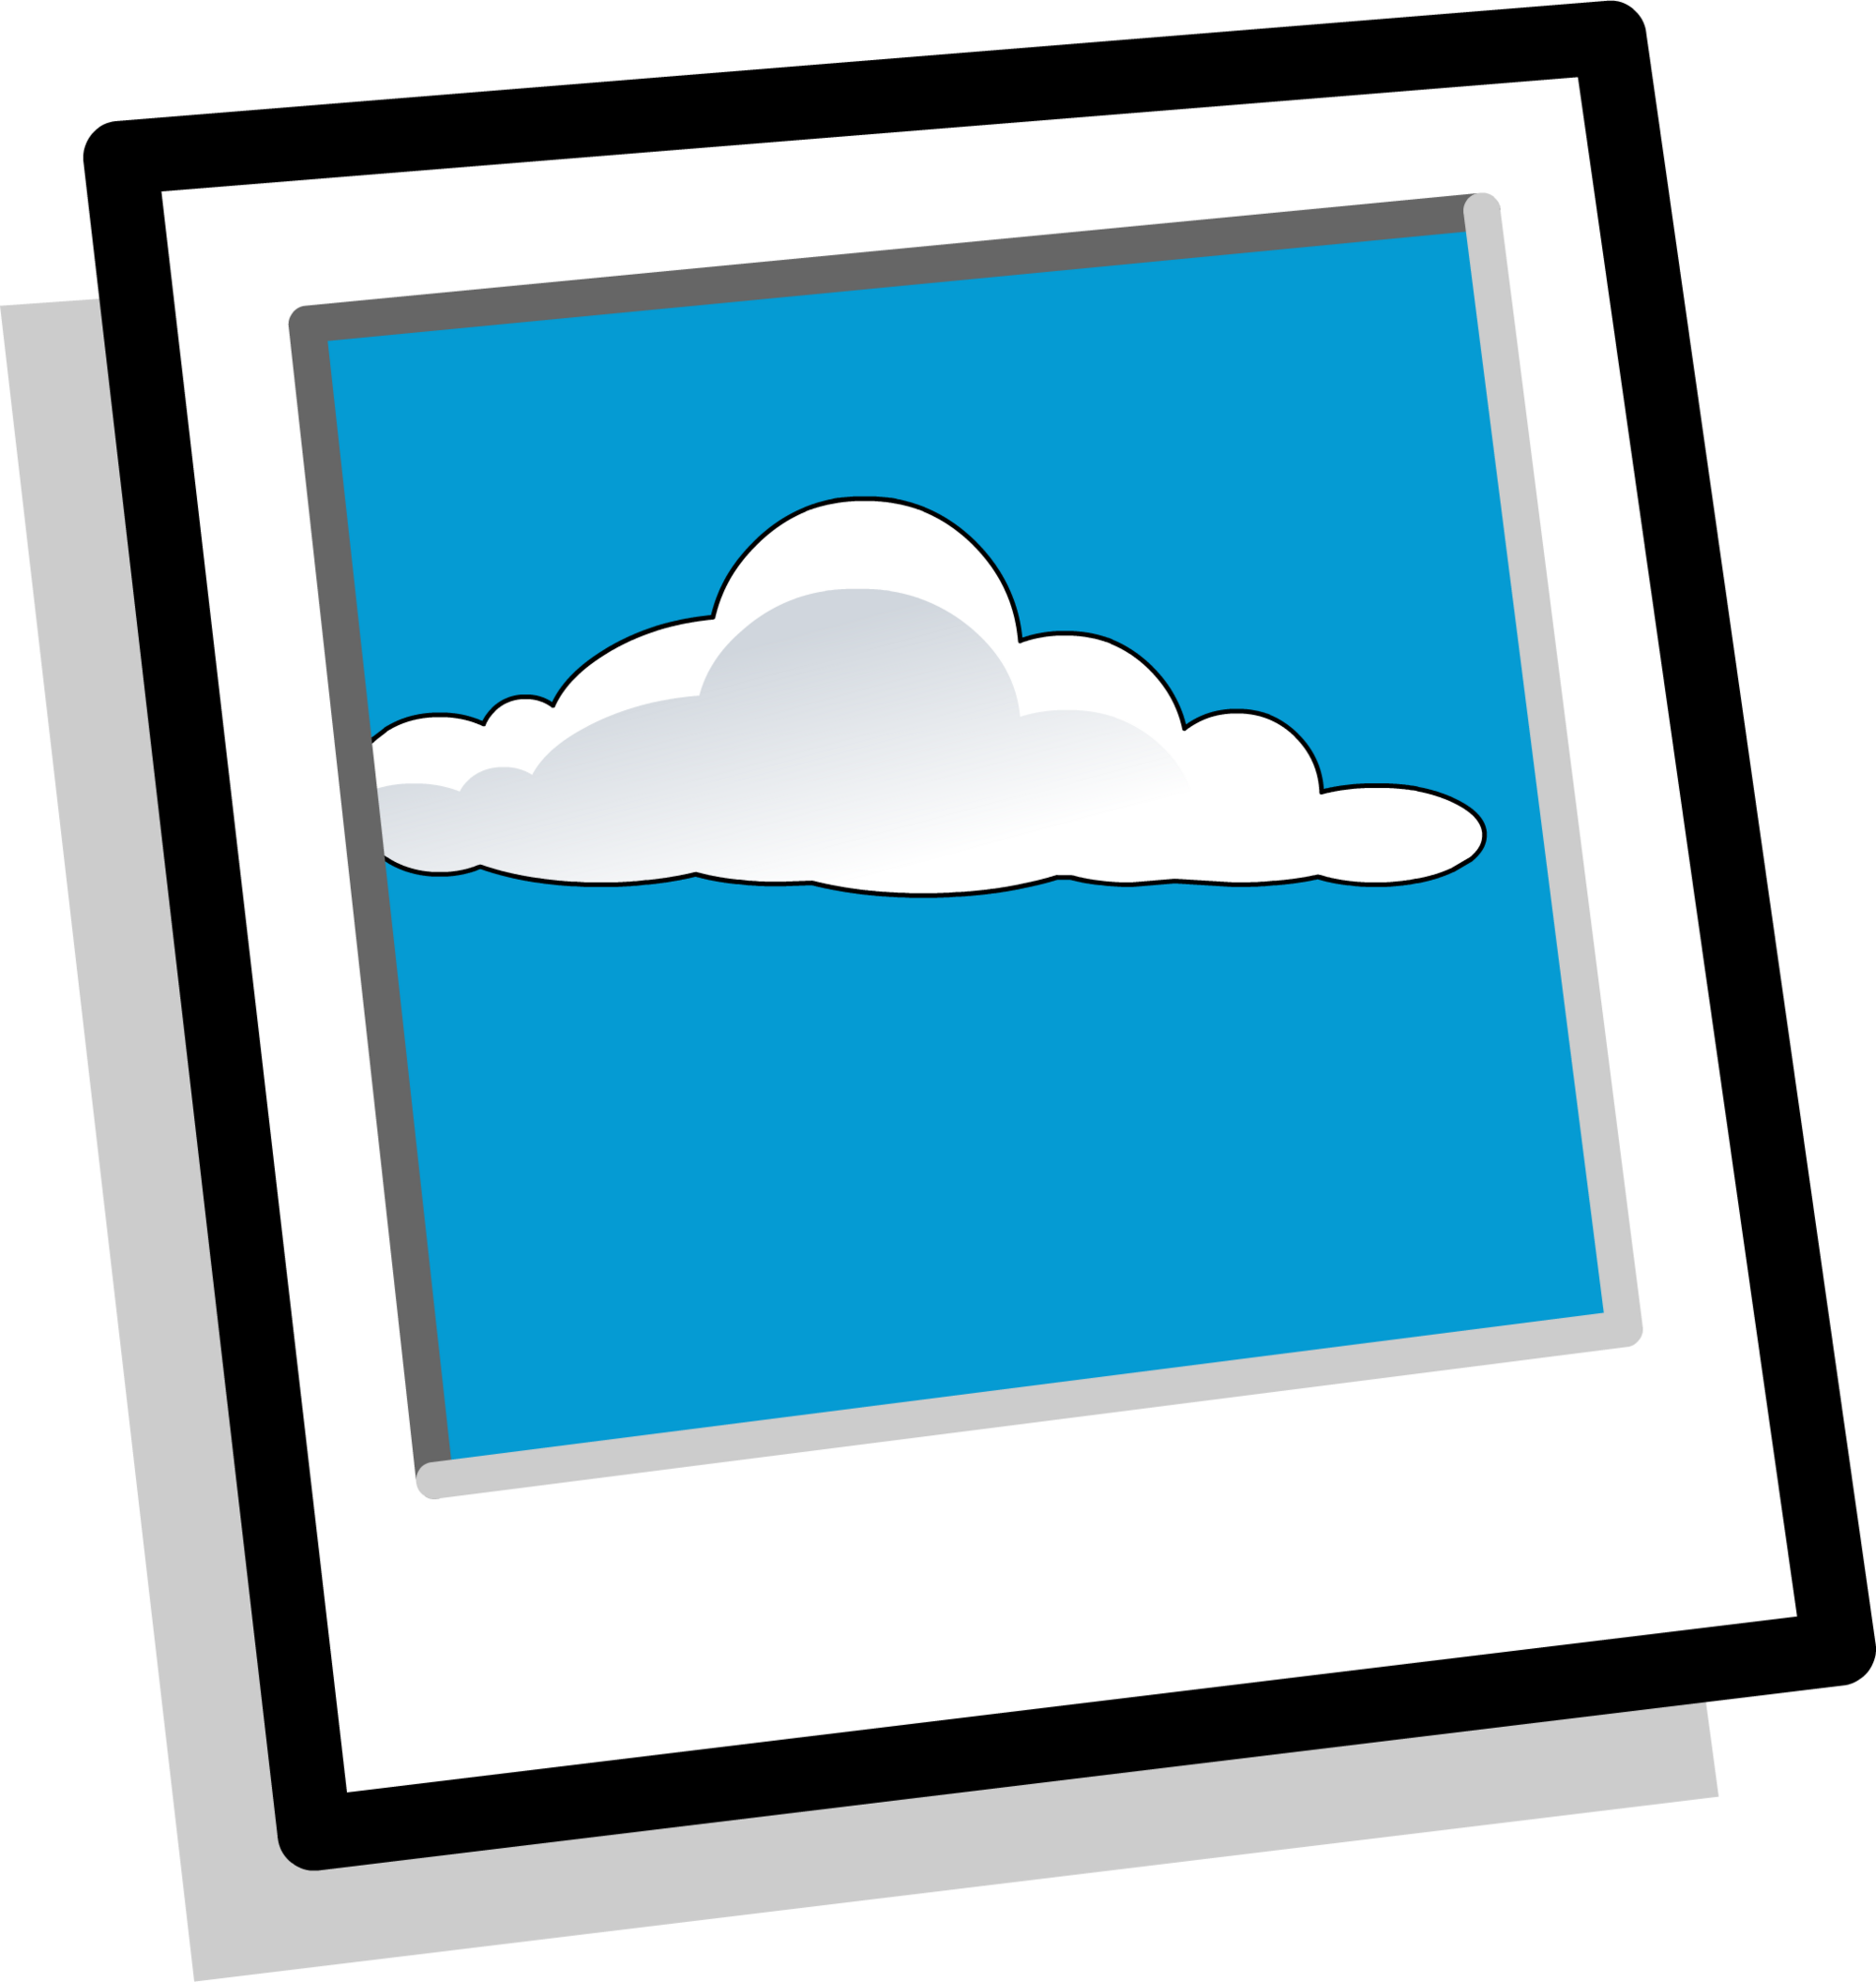 Background image css trackid sp 006 - Clouds Background Clothing Icon Id 904